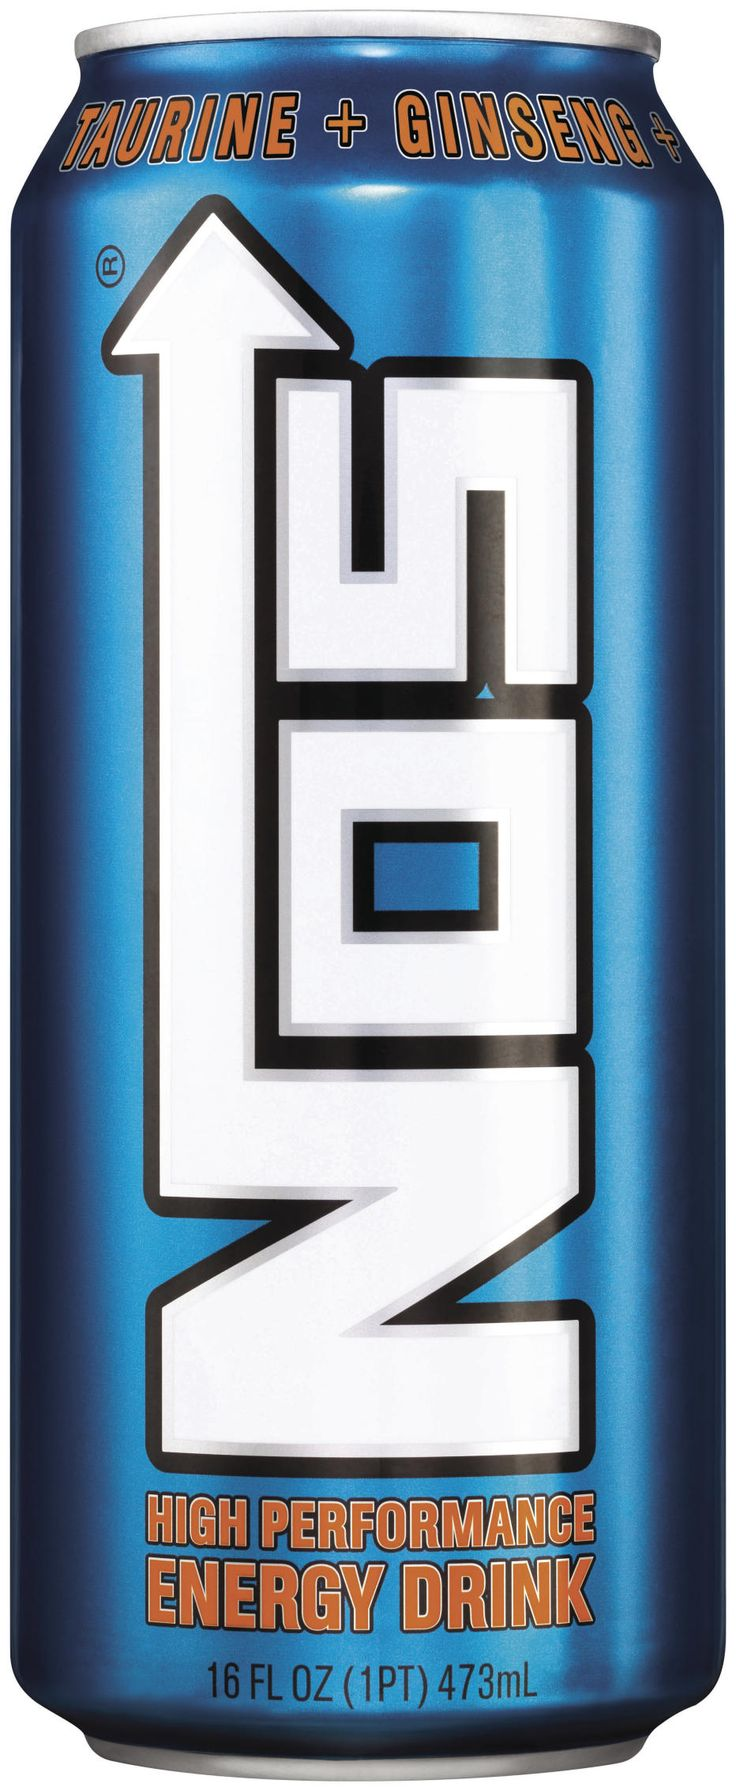 17 best images about energy drink on pinterest best